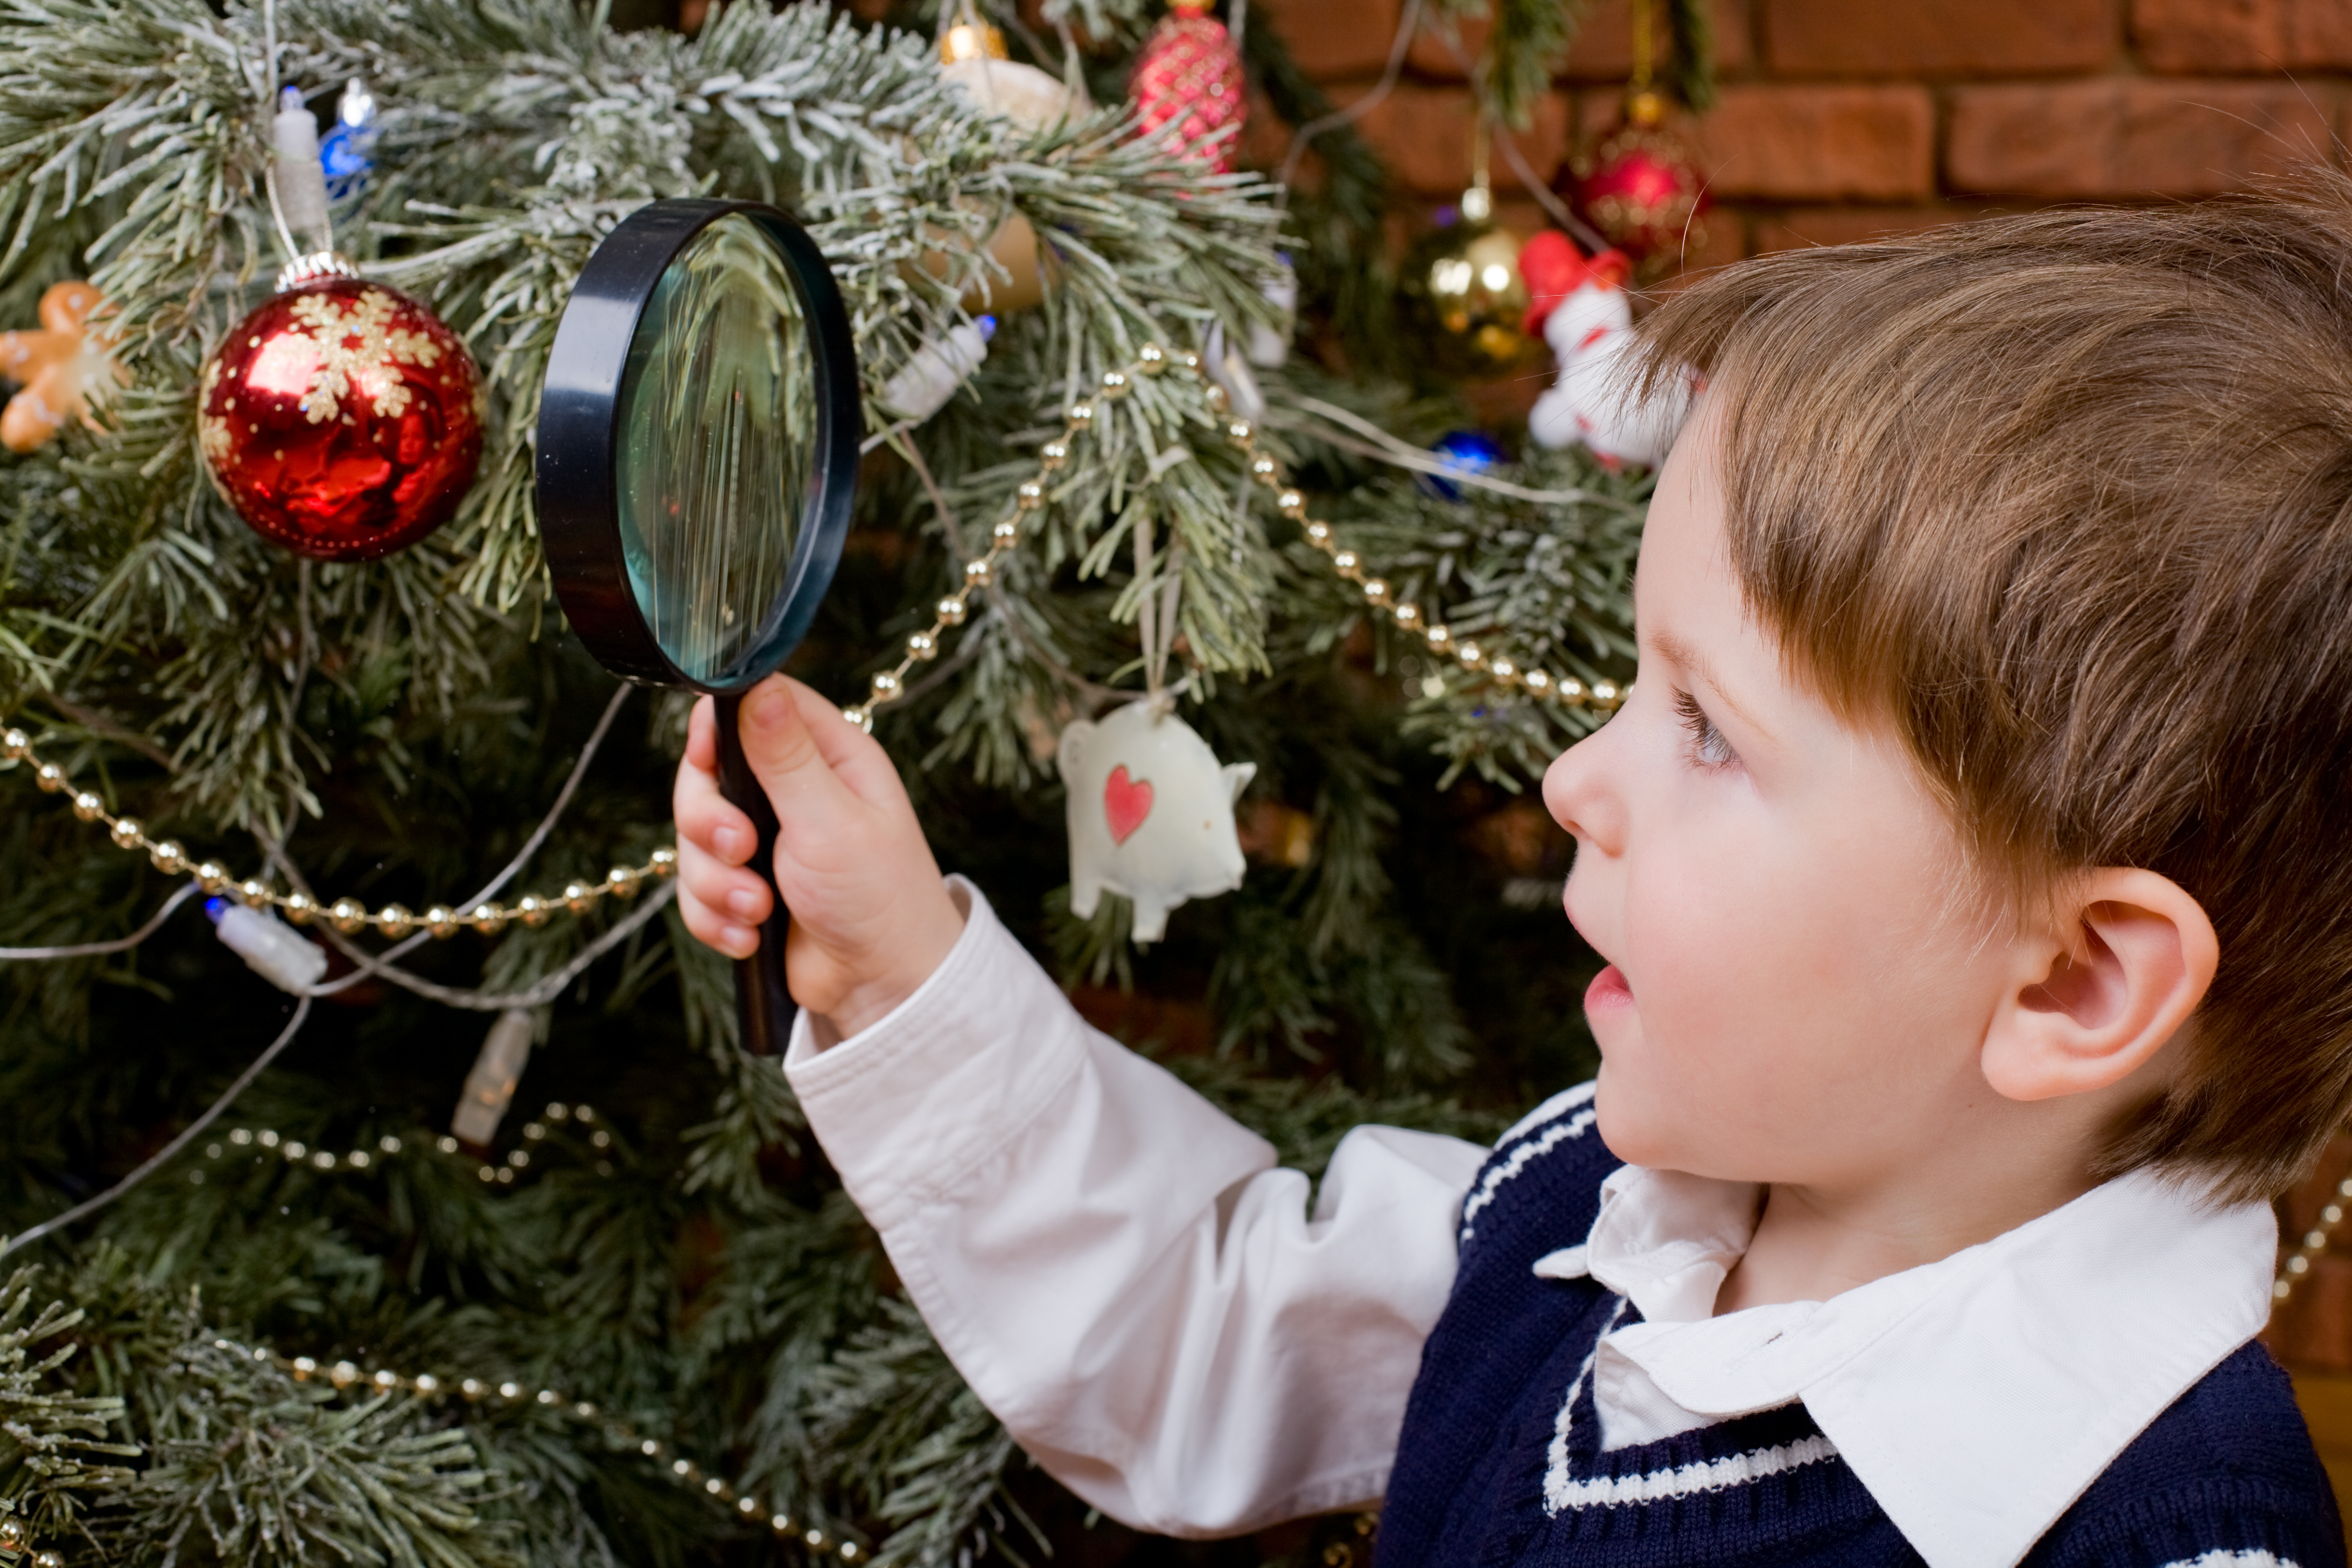 Boy tree decorations christmas winder magnifying glass